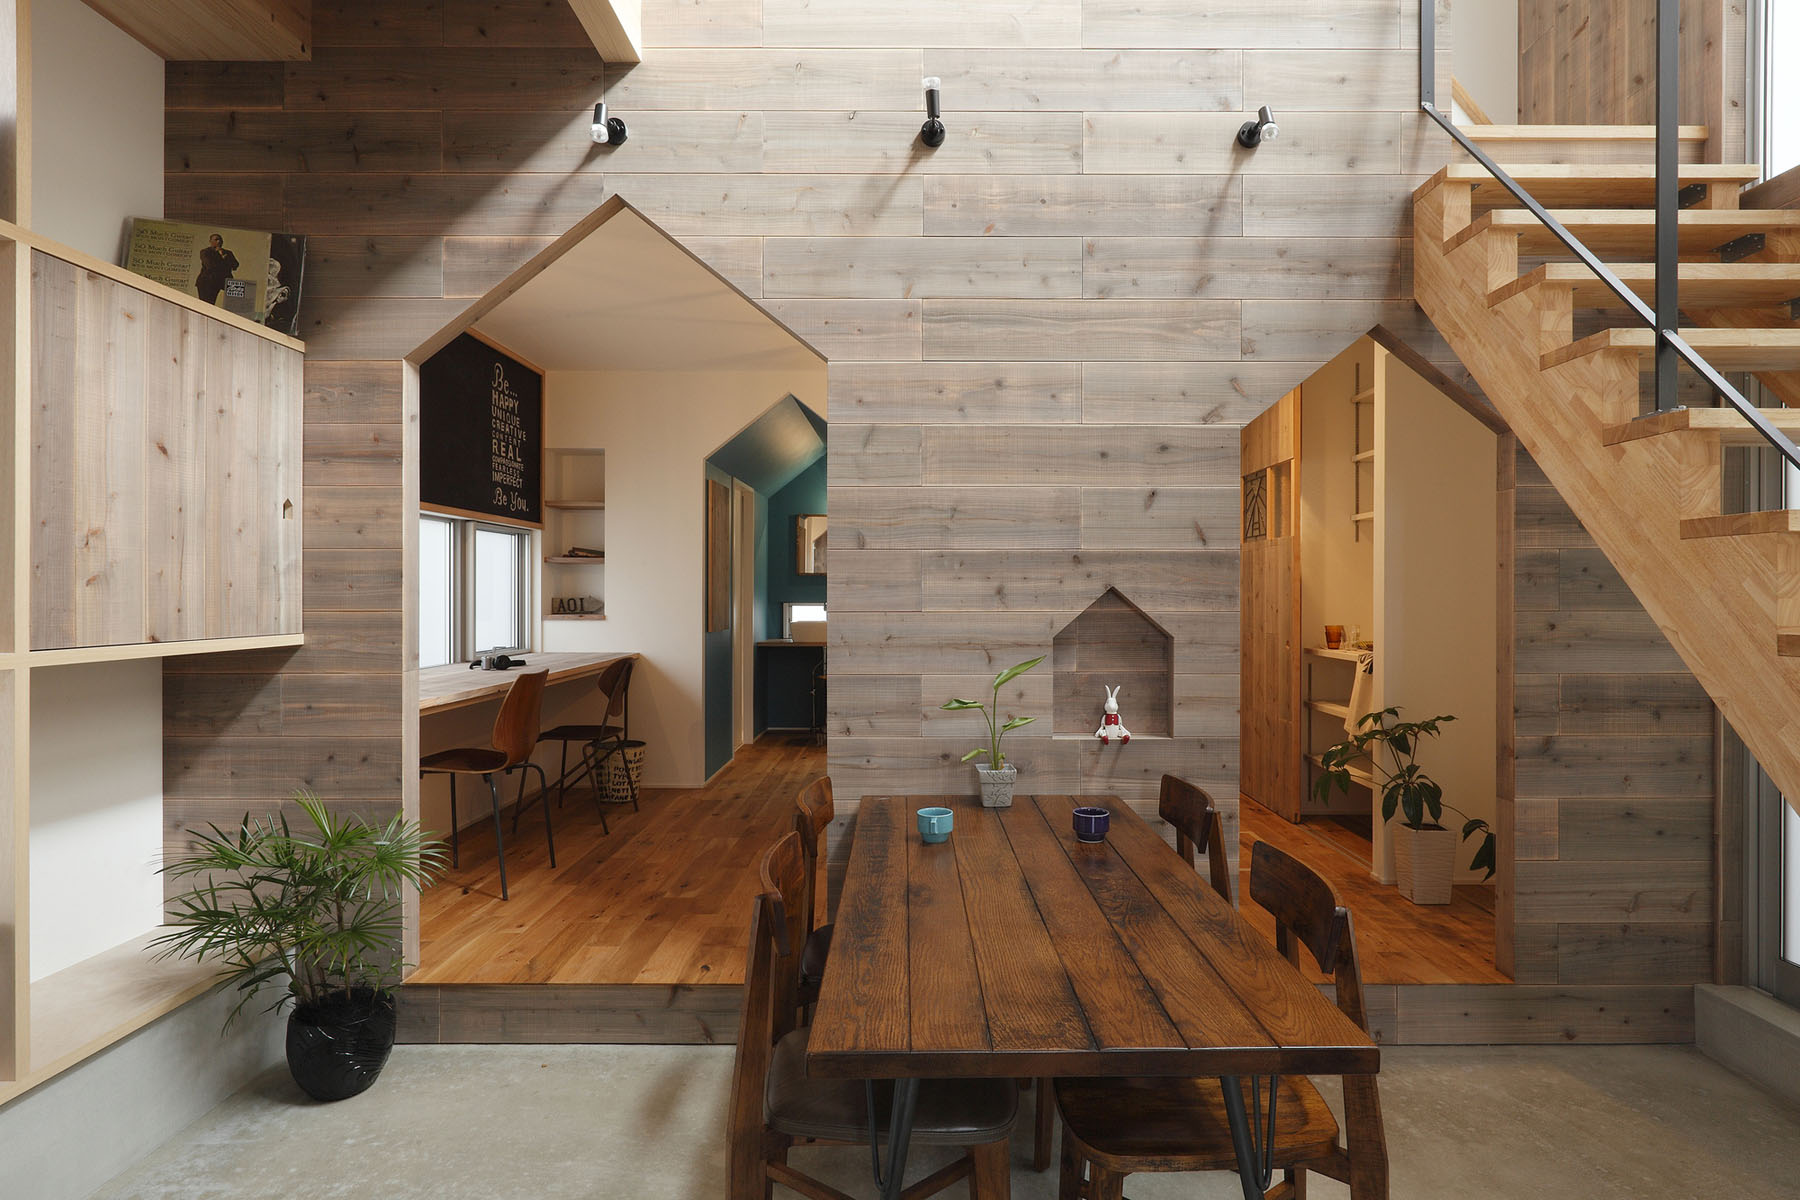 Japanese Home Modern Wood Interior Decor Hazukashi House ...